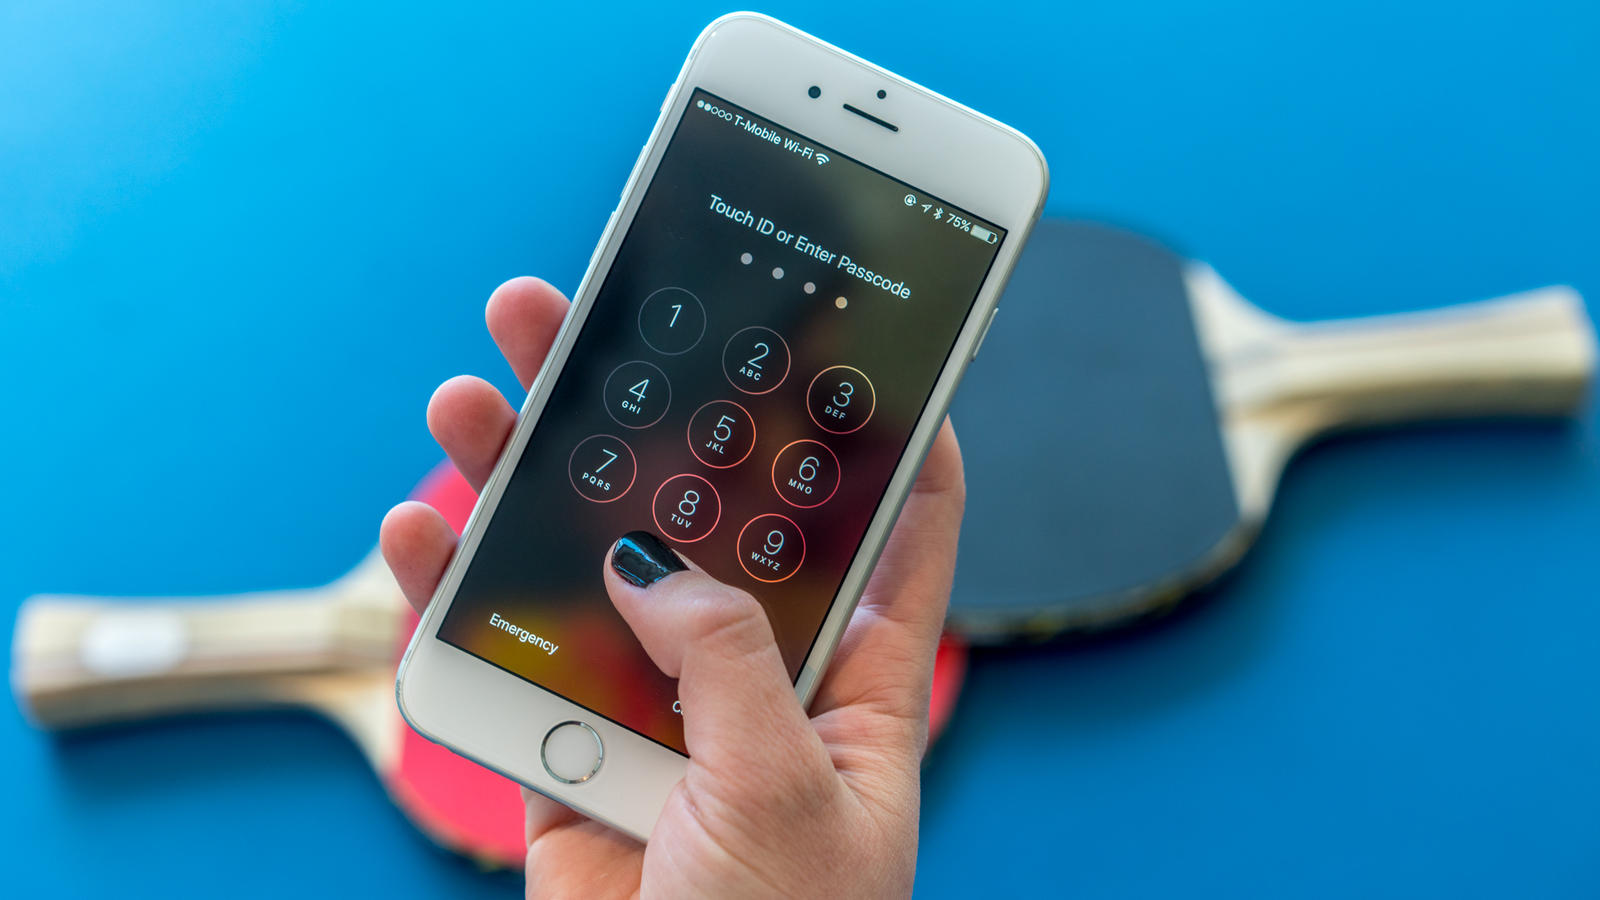 iPhone hacked Secretly